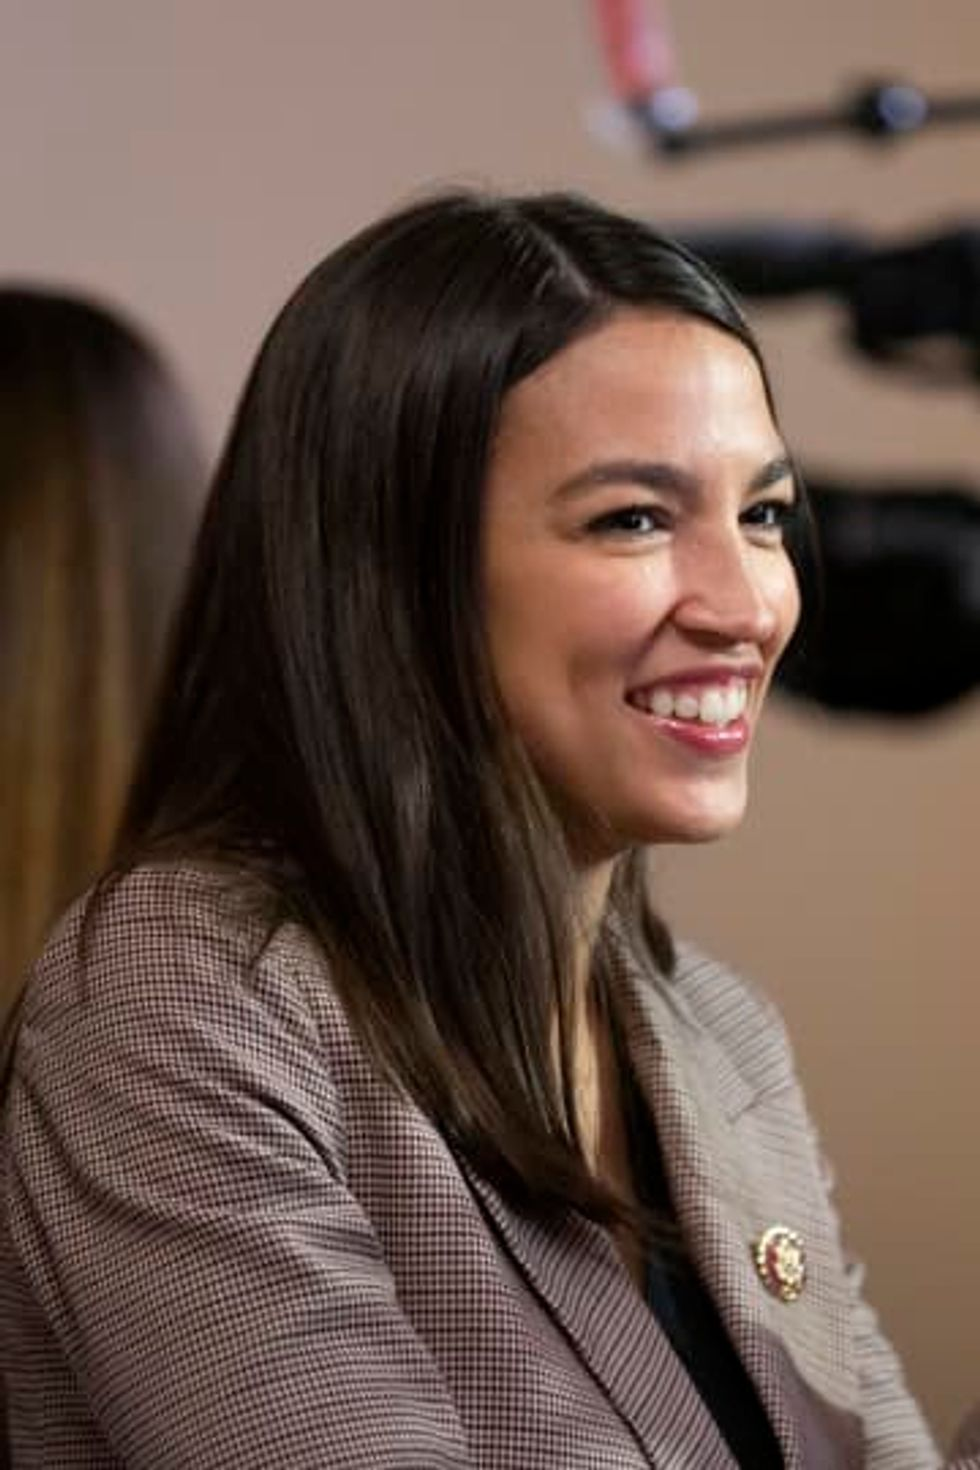 Trump tees up impeachment defense with stream of insults at AOC and Democrats